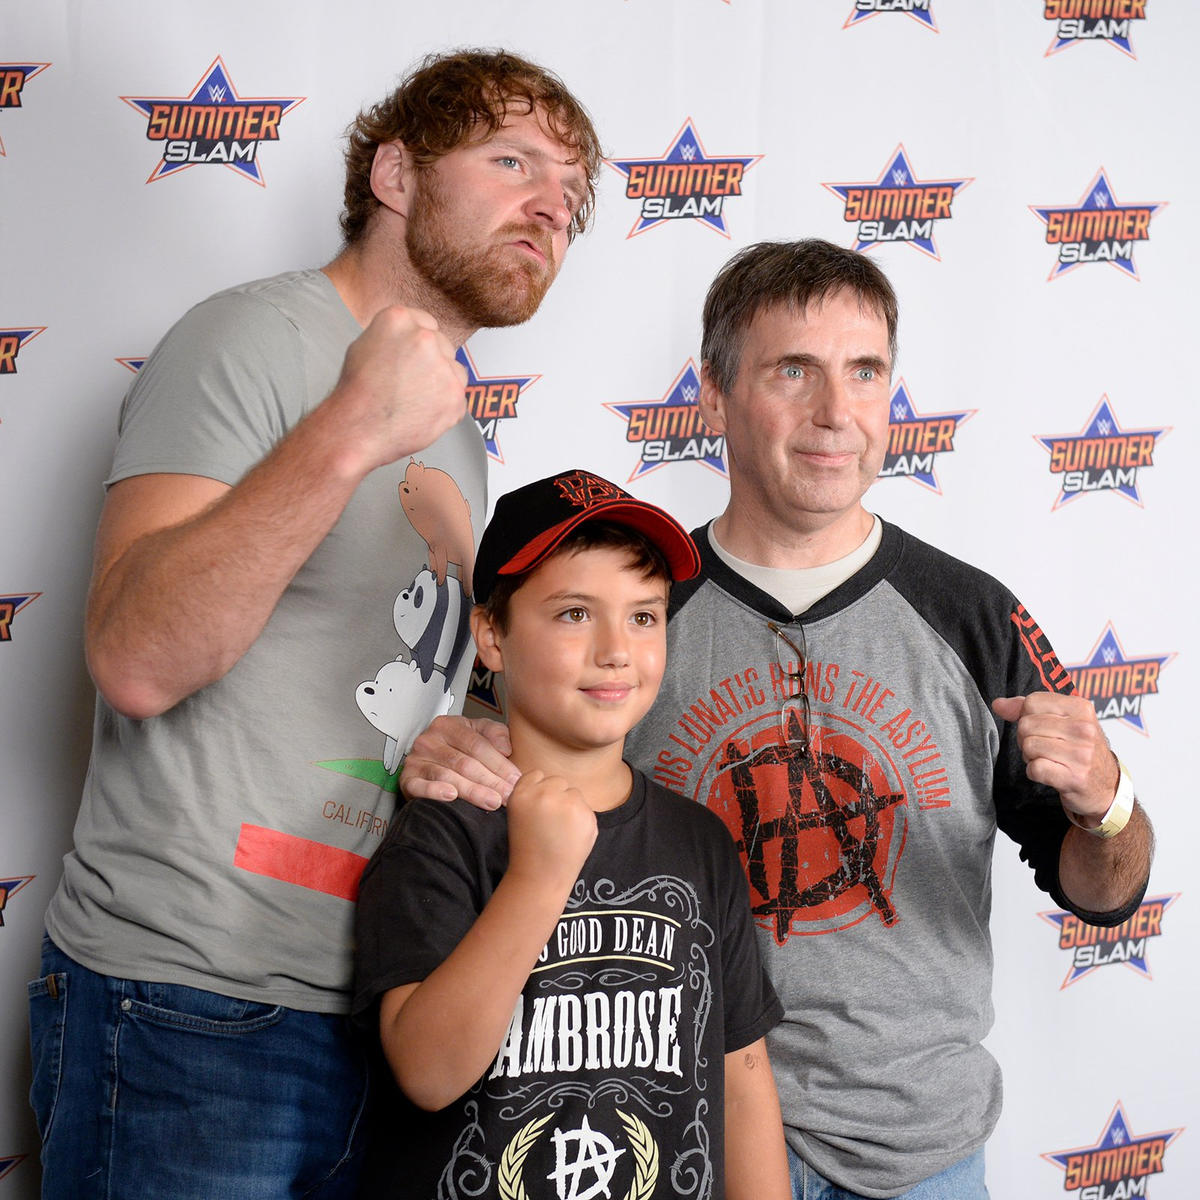 Aj Styles And Dean Ambrose Engage The Fans In A Special Summerslam